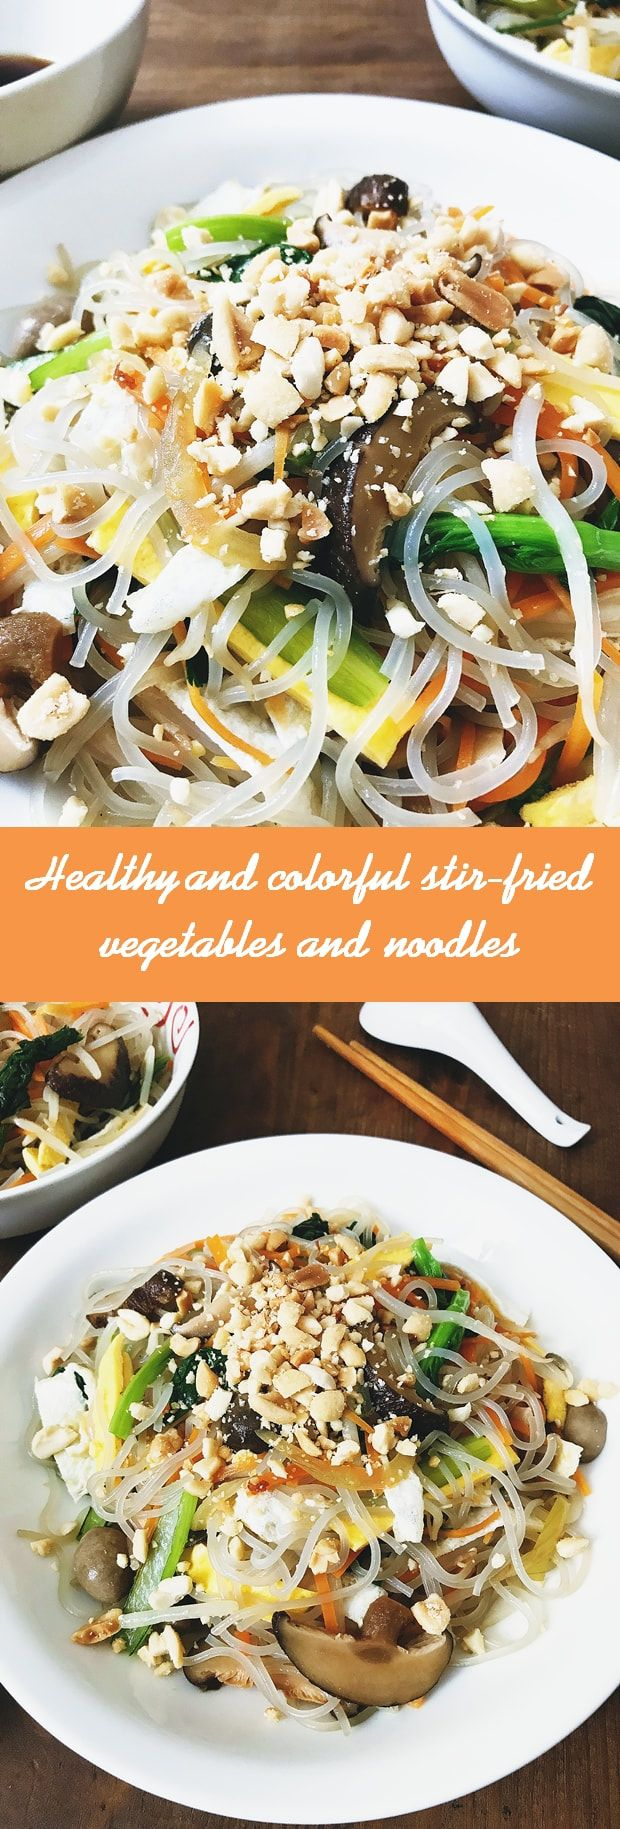 This vegetarian and refreshing dish with lots of nutritious veggies and noodles is a must for your healthy diet.